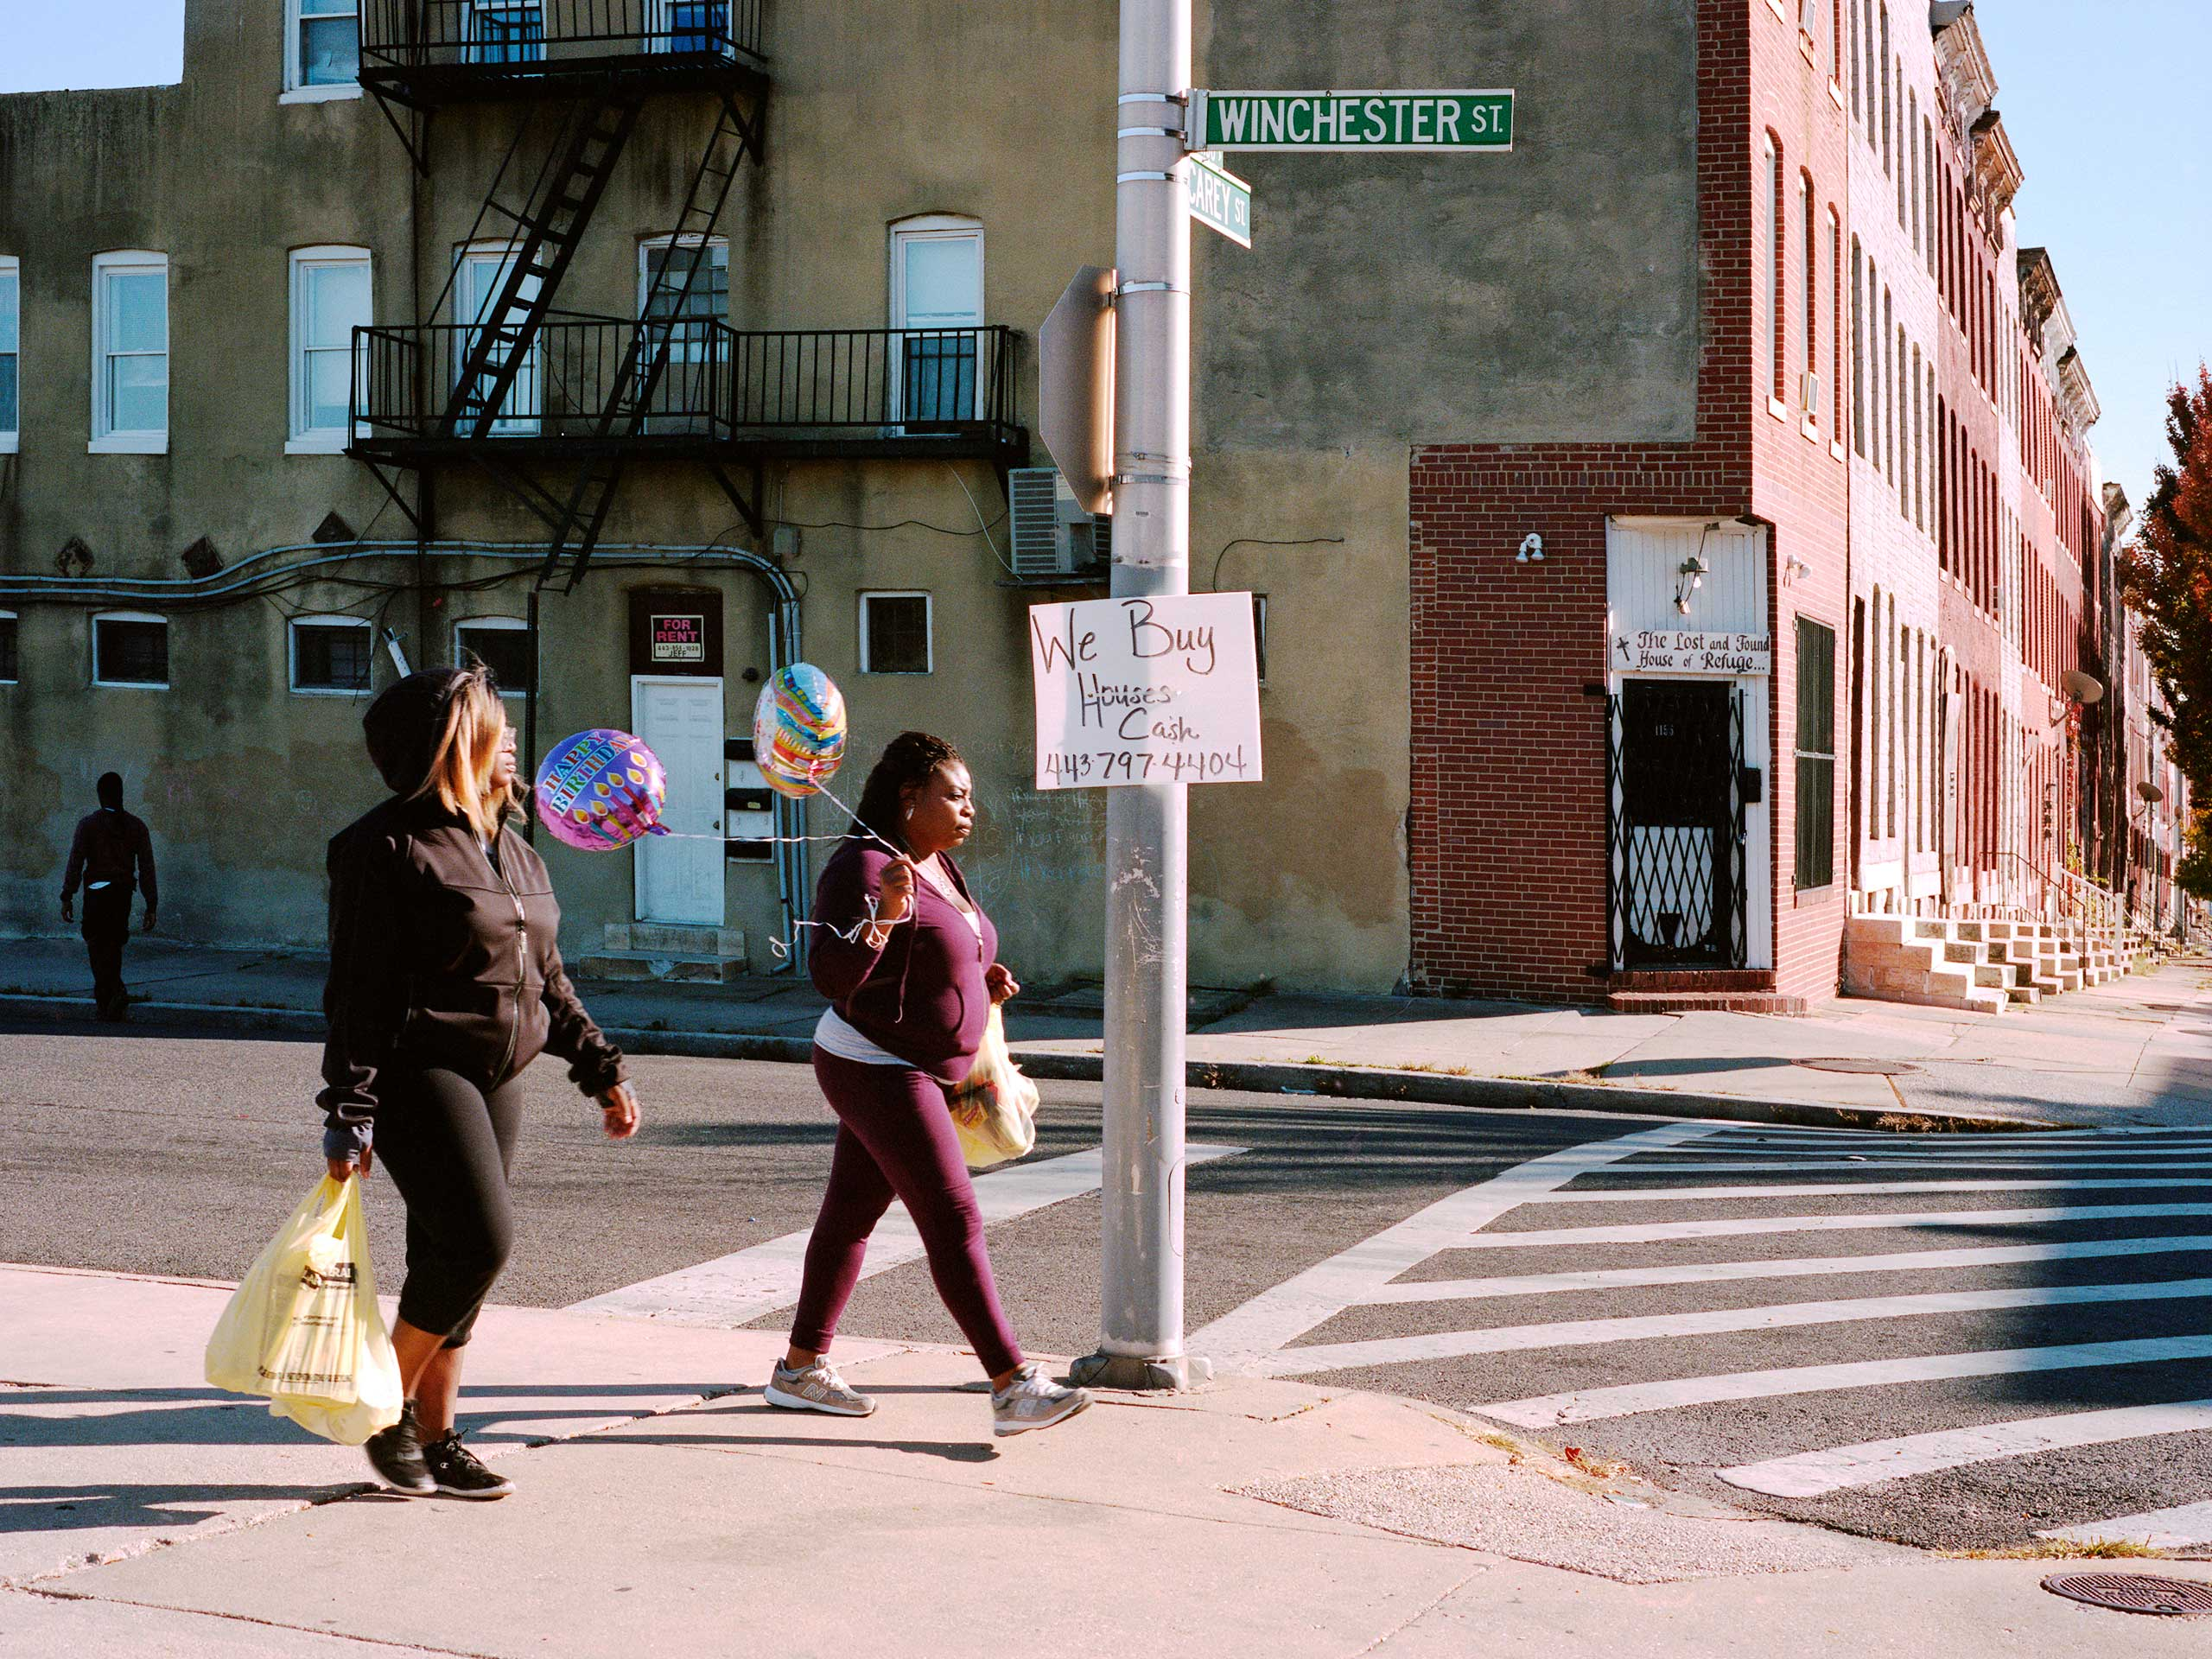 Two women walk past the corner of Winchester Street and North Carey Street carrying birthday balloons.